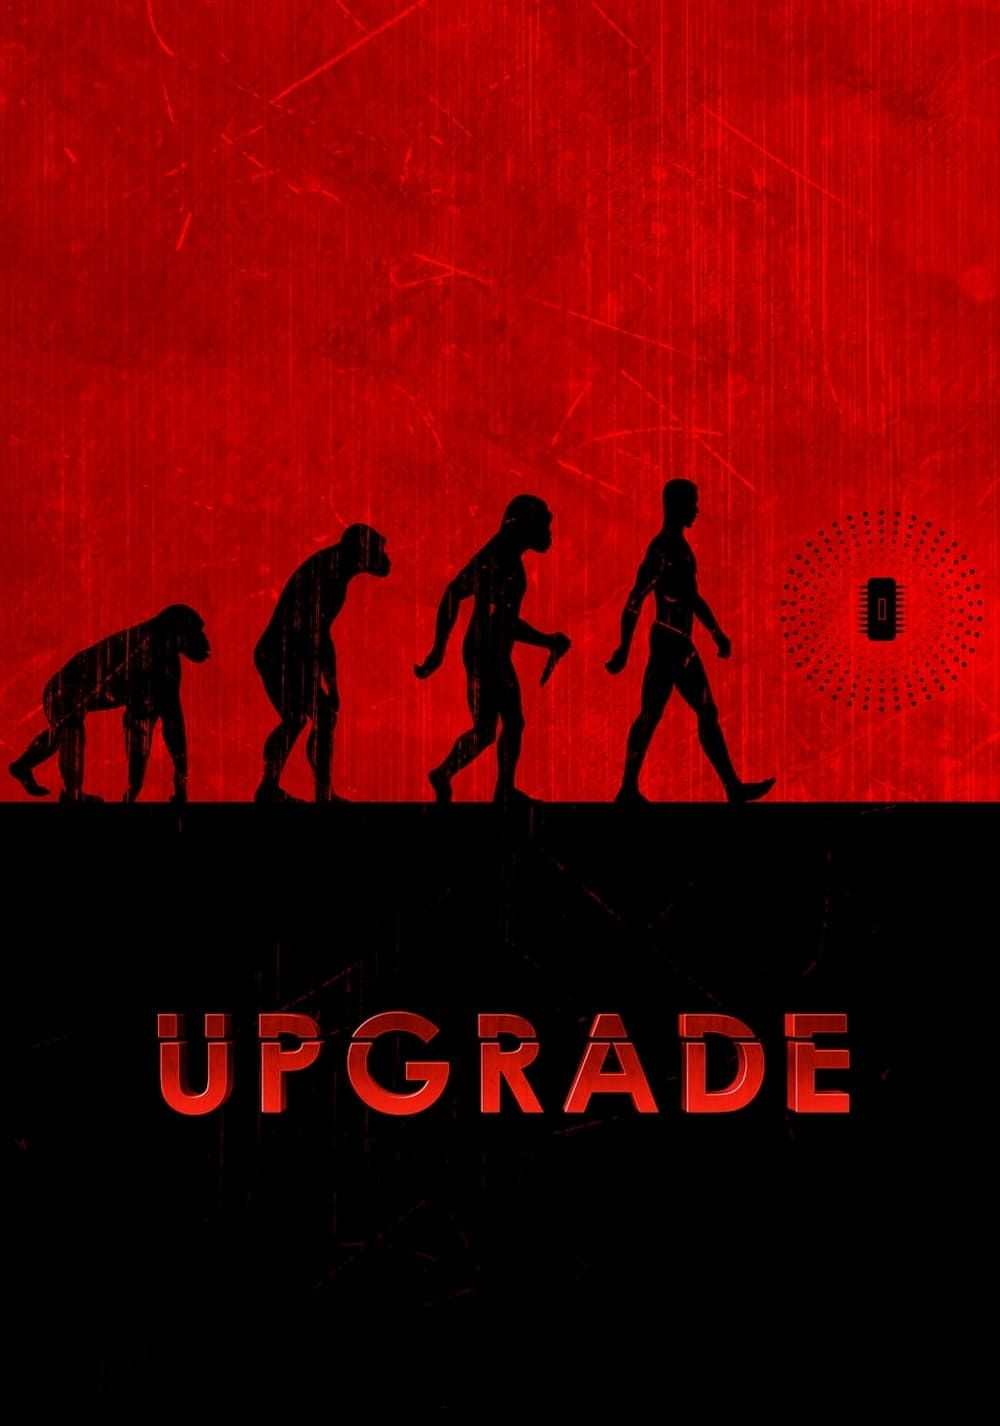 Upgrade 2018 Full Movies Online Free Free Movies Online Streaming Movies Online